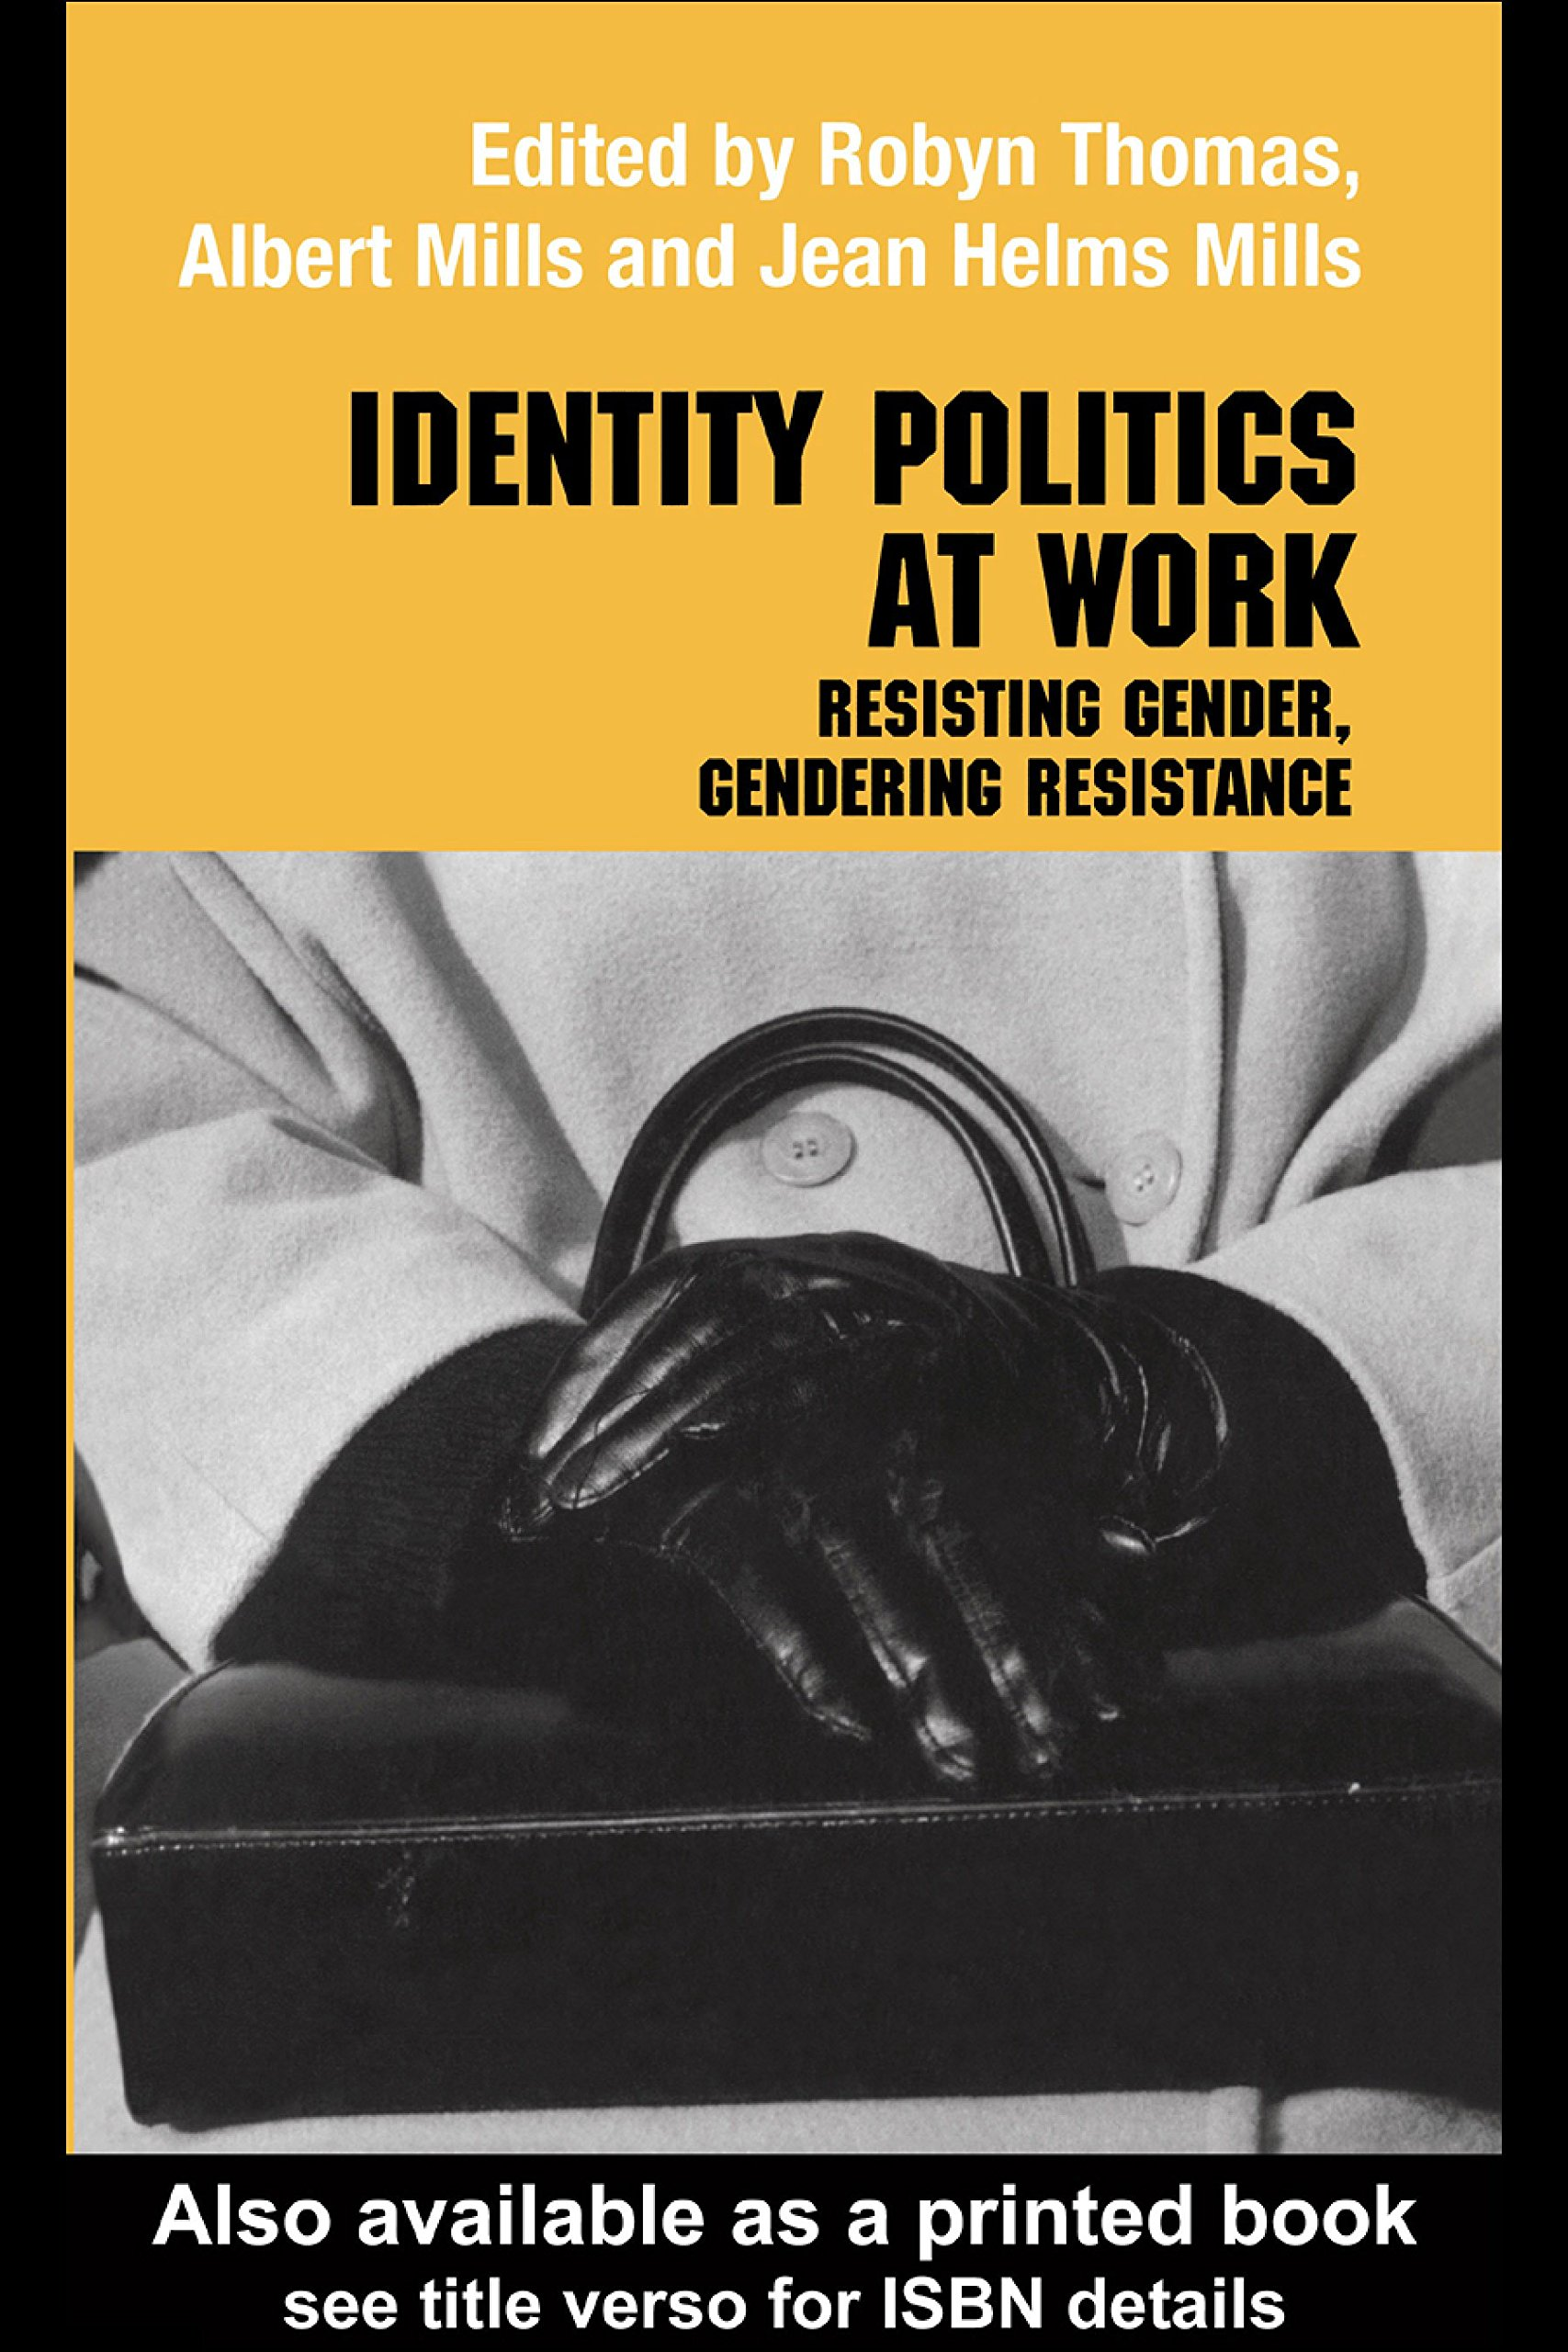 Identity Politics at Work: Resisting Gender, Gendering Resistance (Routledge Studies in Management, Organizations and Society Book 10)